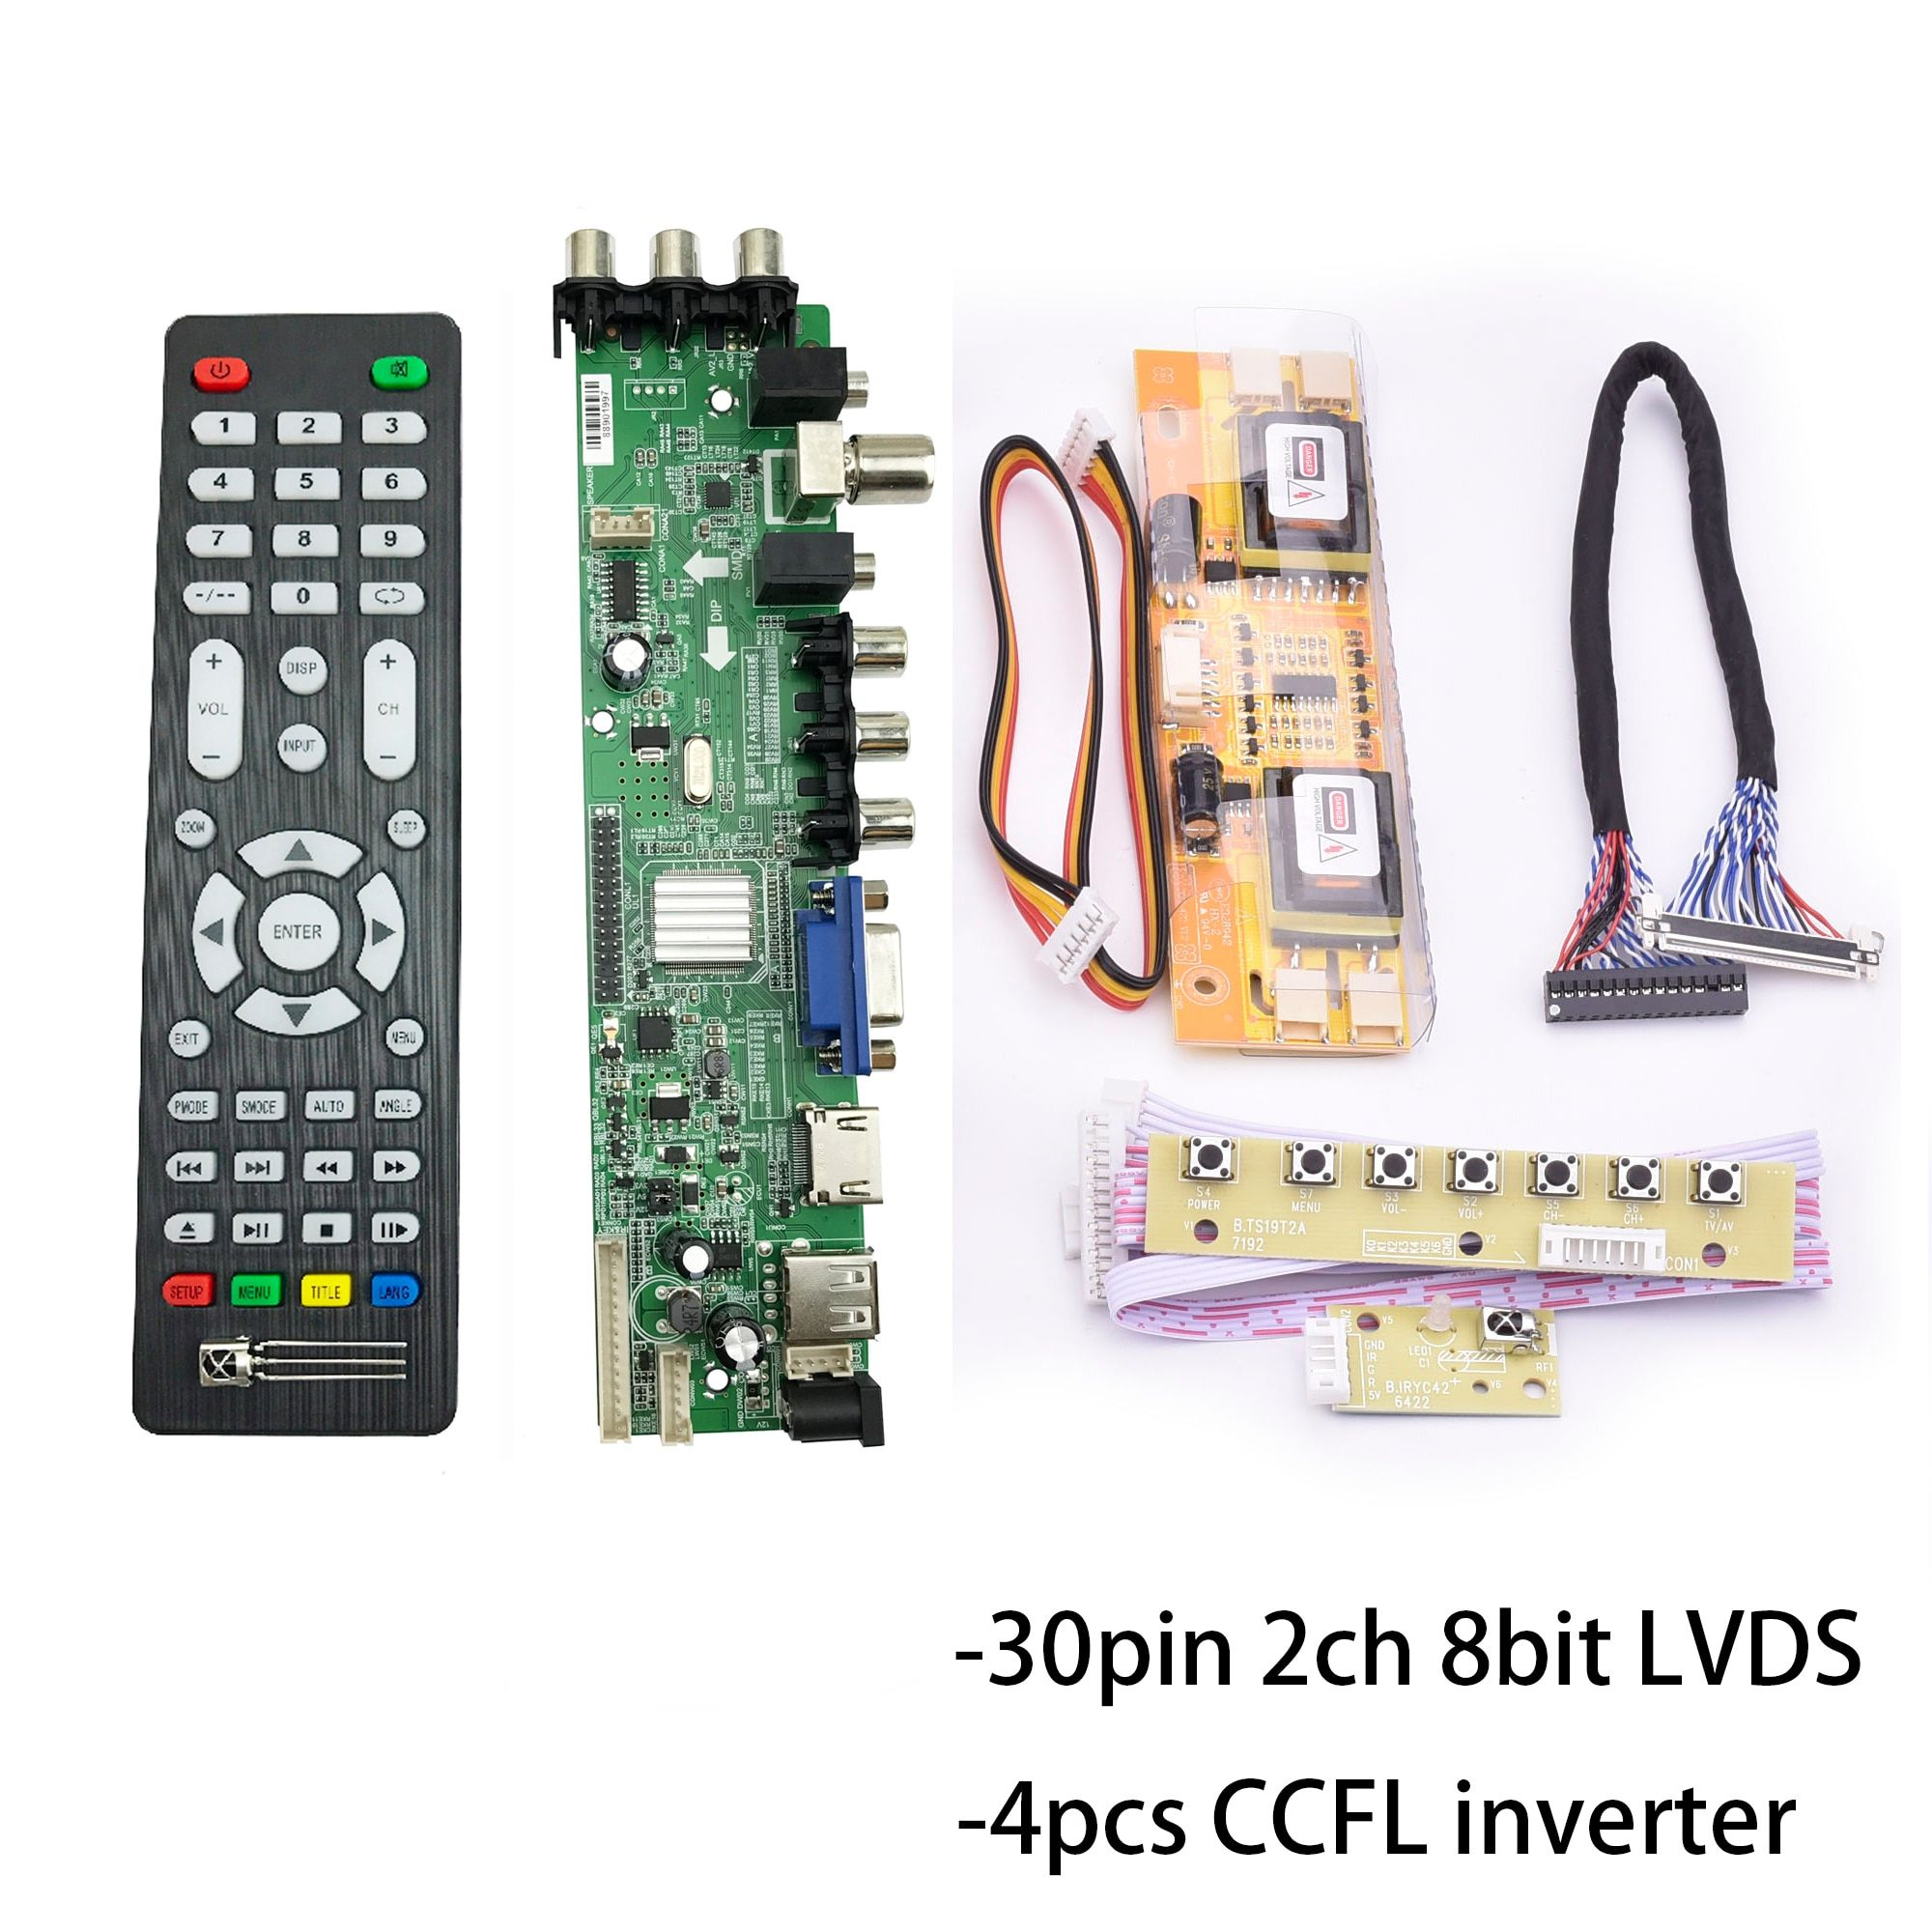 D3663lua a81 dvb t2 DVB-C DVB-T/T2 Universal LCD LED TV Controller Driver Board full kit for 17